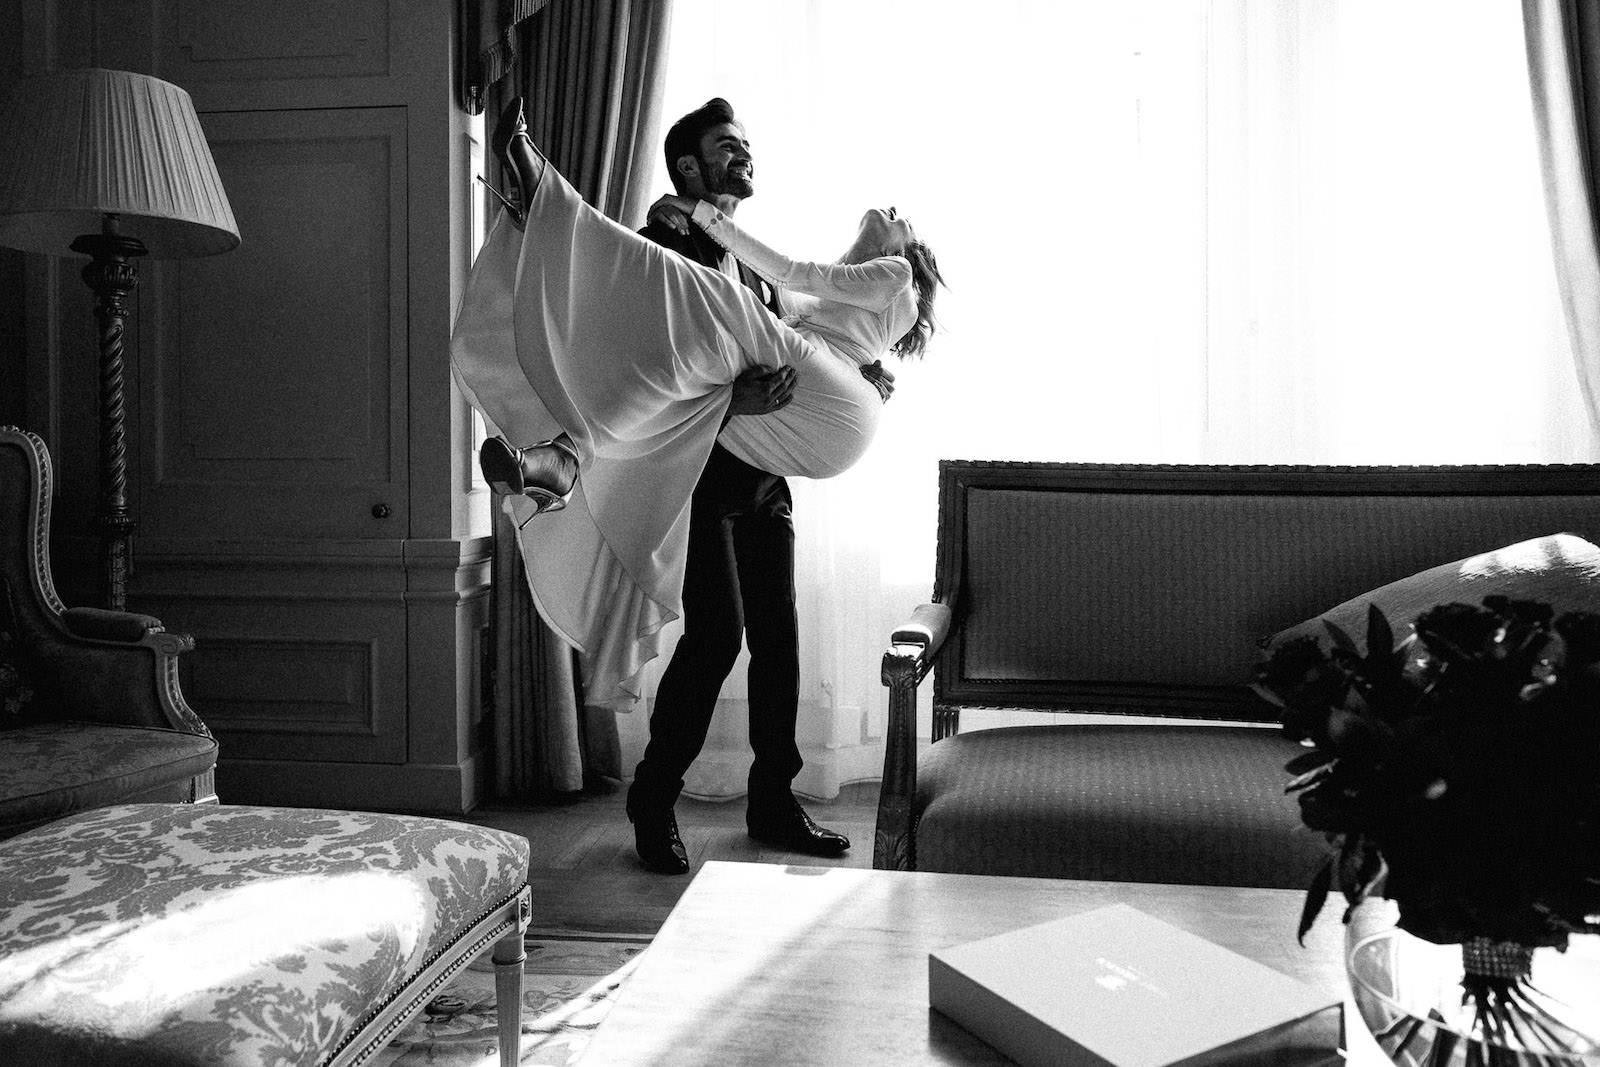 Engagement Photography Hotel Bristol Warsaw Poland 22